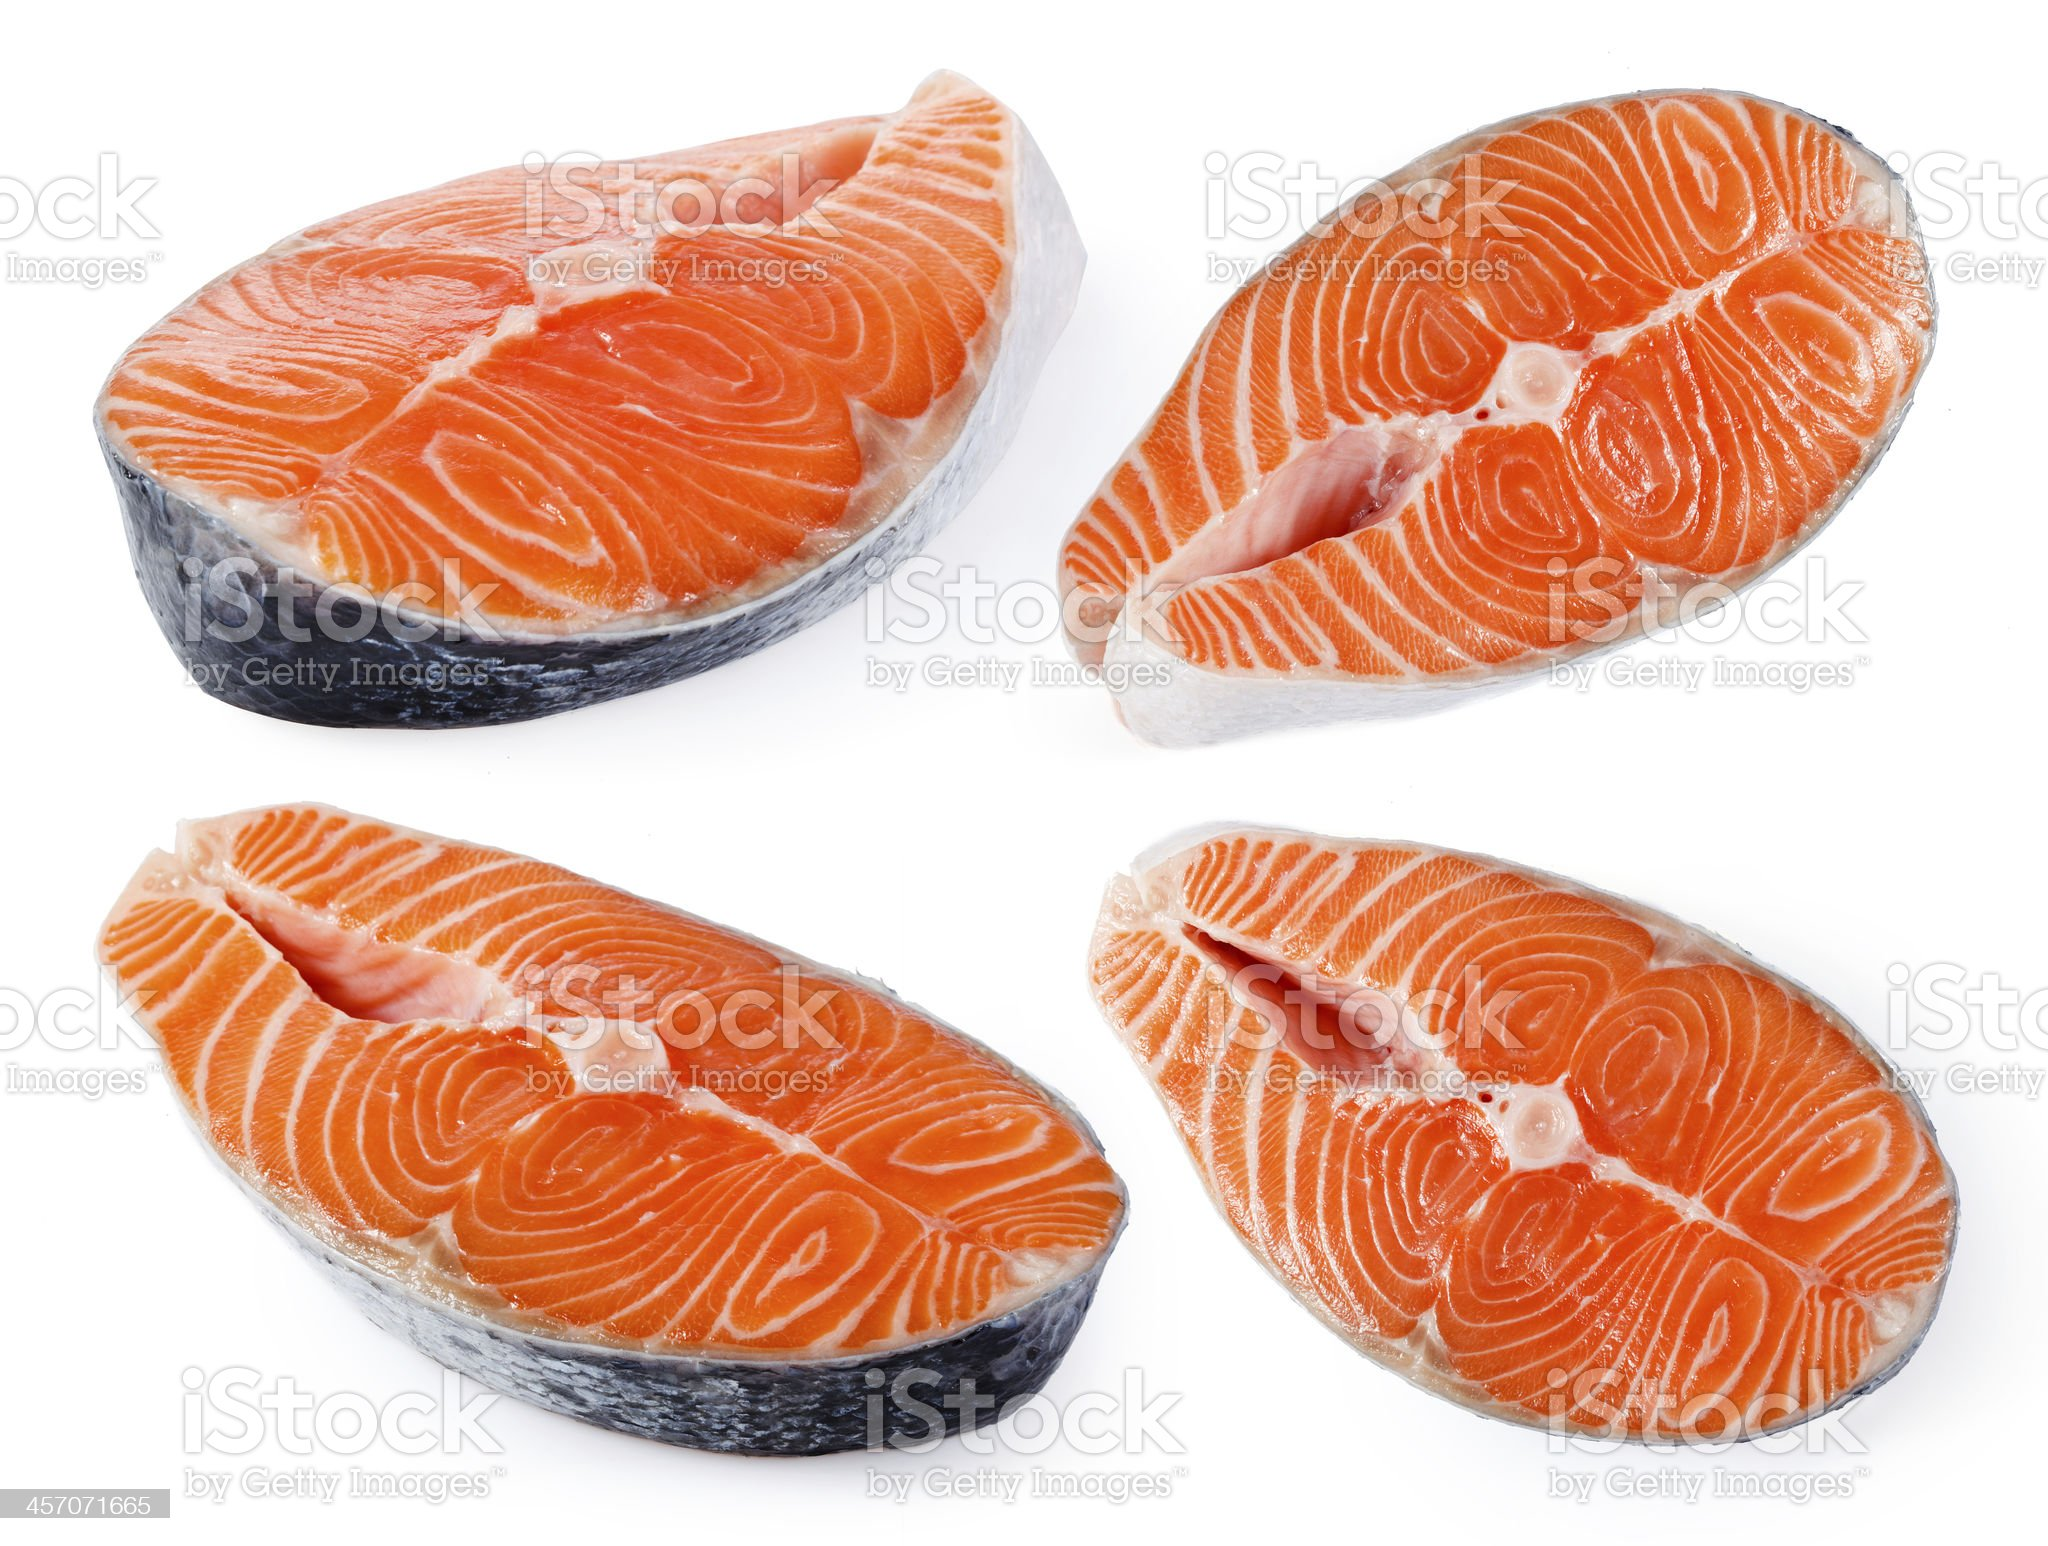 Salmon steak on a white background. Collection royalty-free stock photo